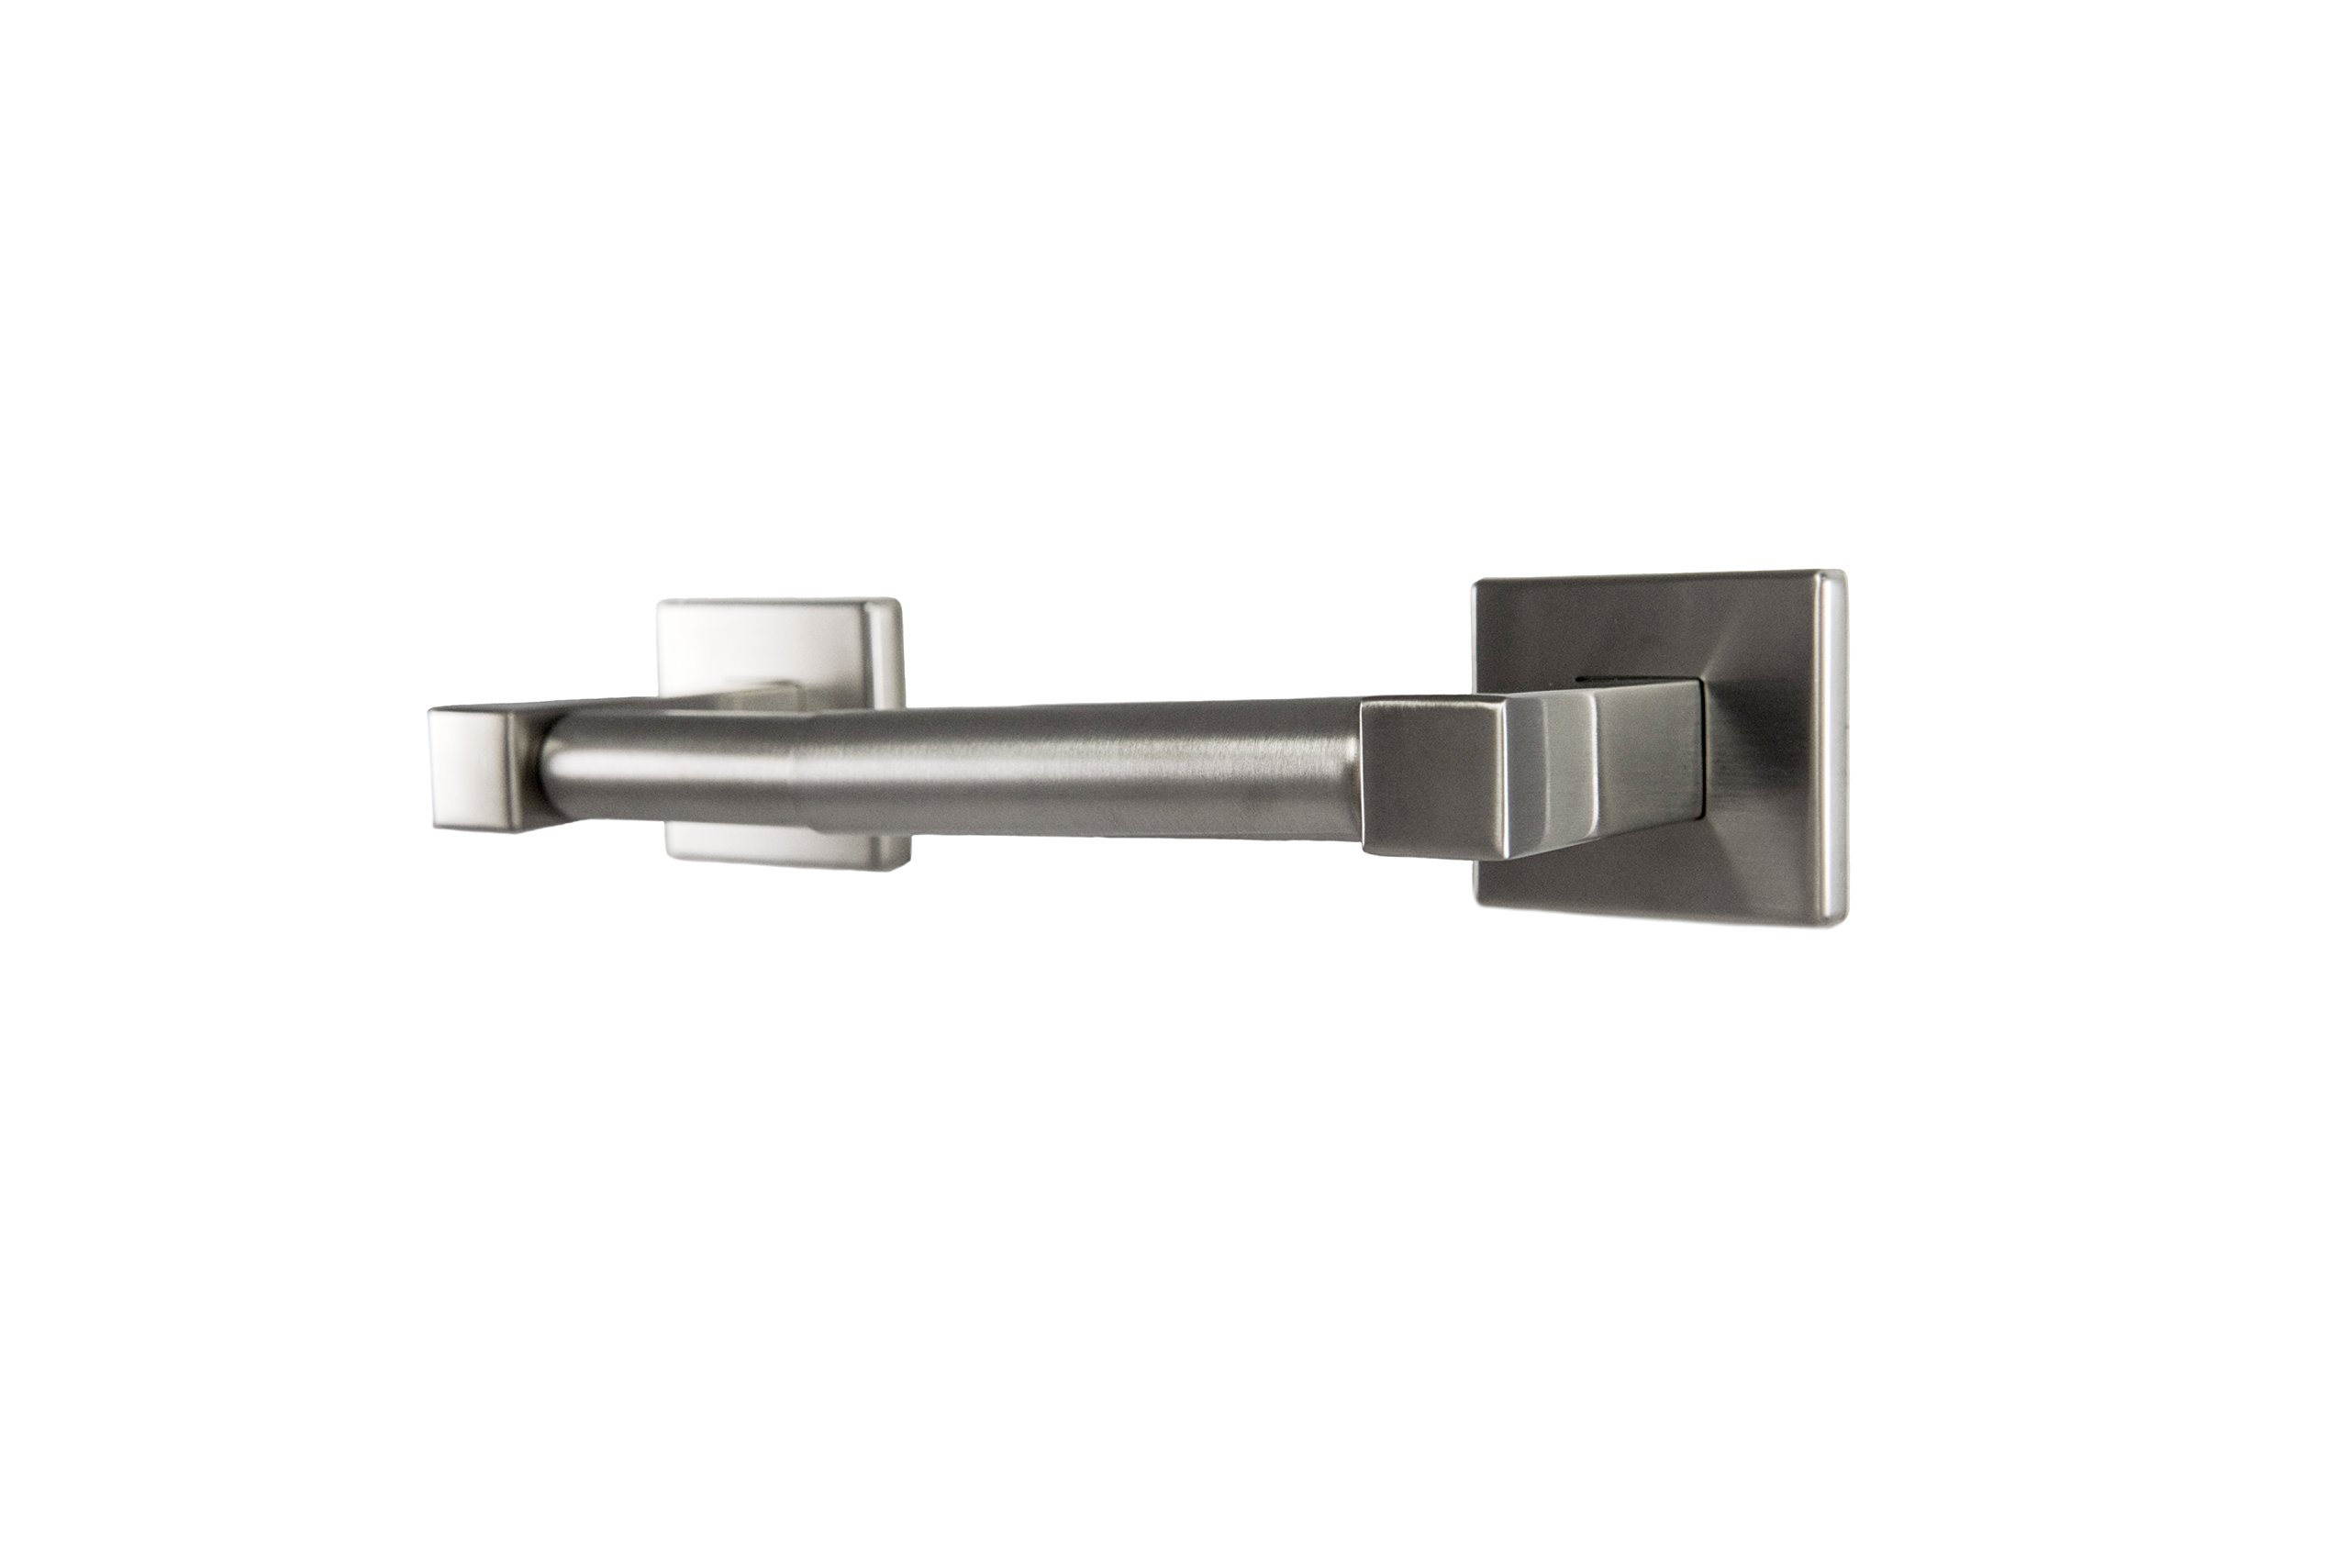 Preferred Bath Accessories 1008-BN-T Primo Collection Traditional Toilet Paper Holder, Brushed Nickel